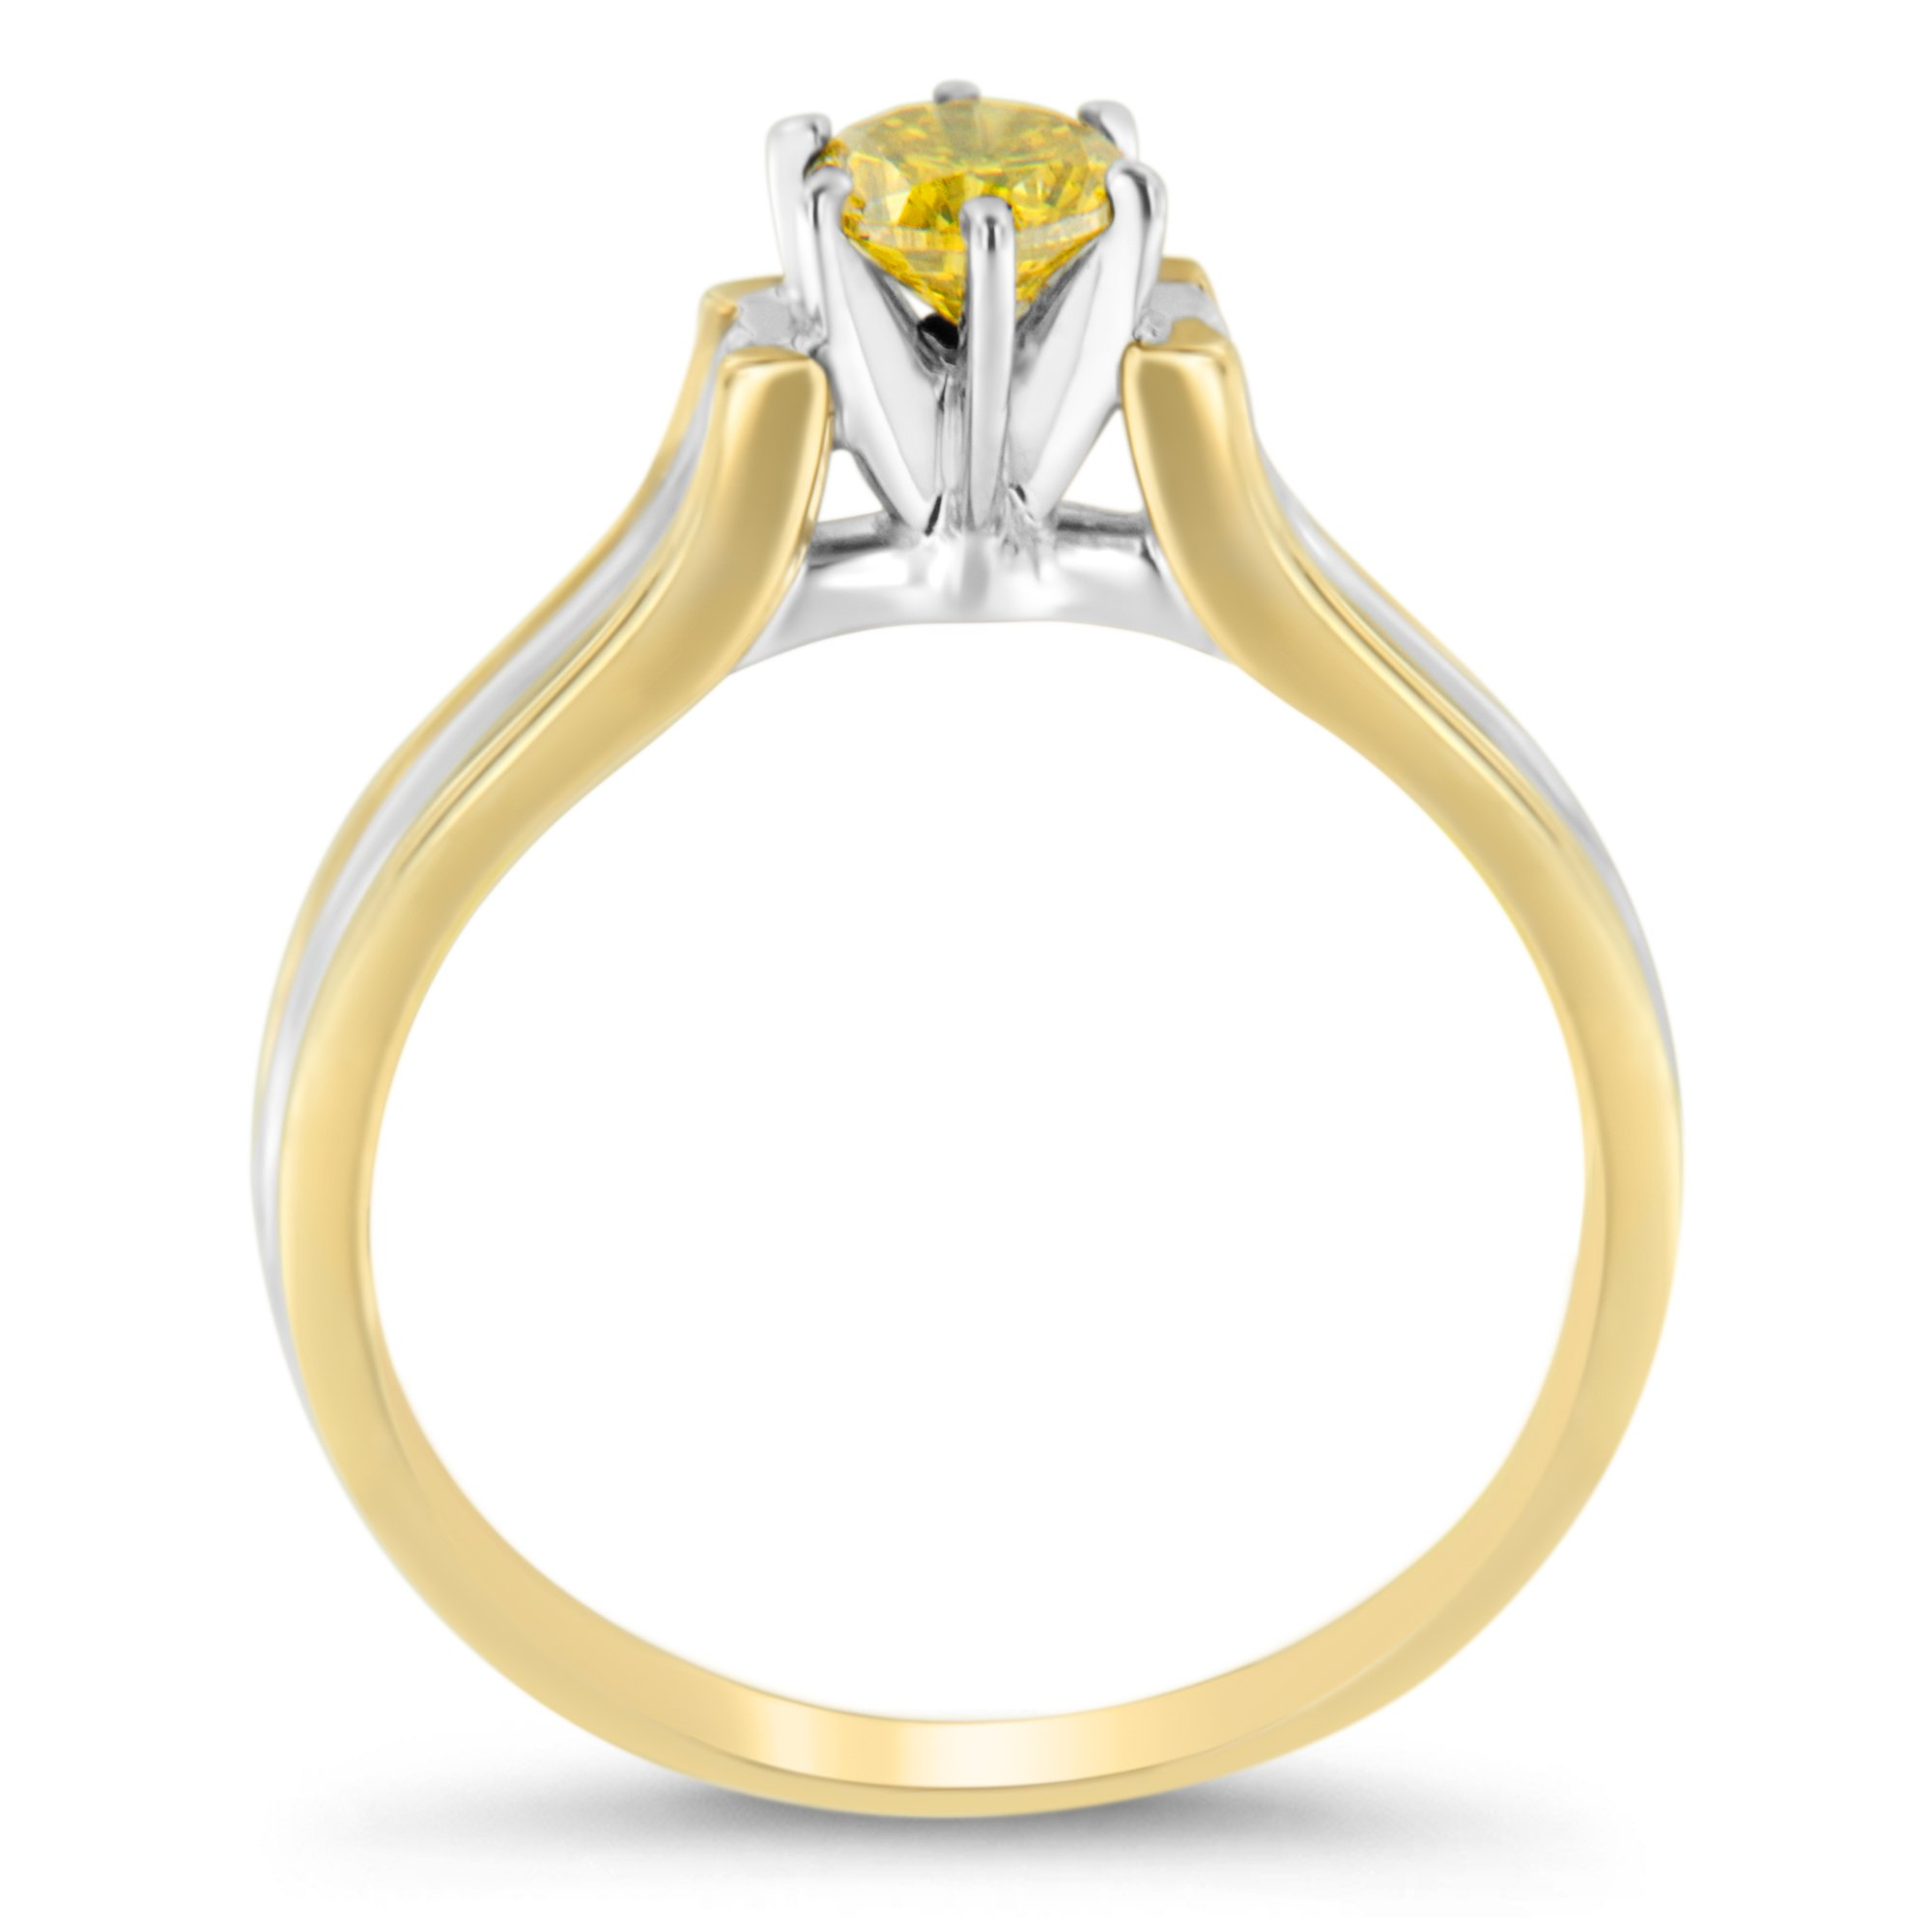 14K Two-Toned Gold Treated Yellow Round Diamond Solitaire Engagement Ring (0.5 cttw, Yellow Color, I2-I3 Clarity)